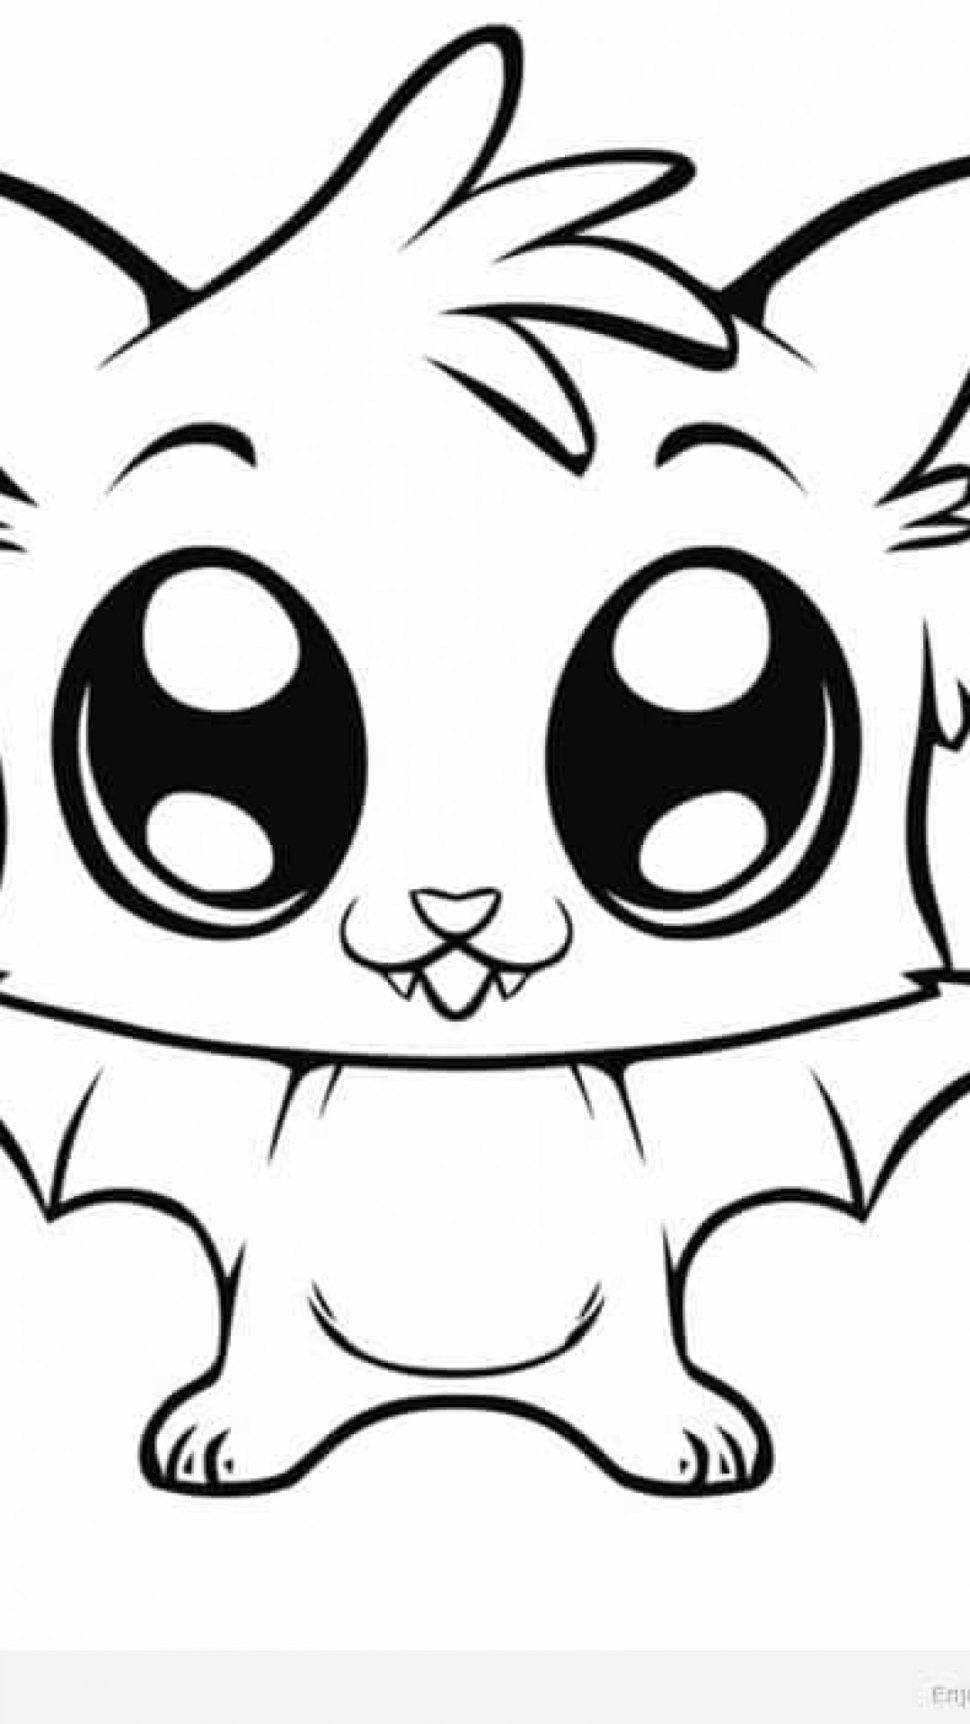 Animal Coloring Pages | Free download best Animal Coloring Pages ...